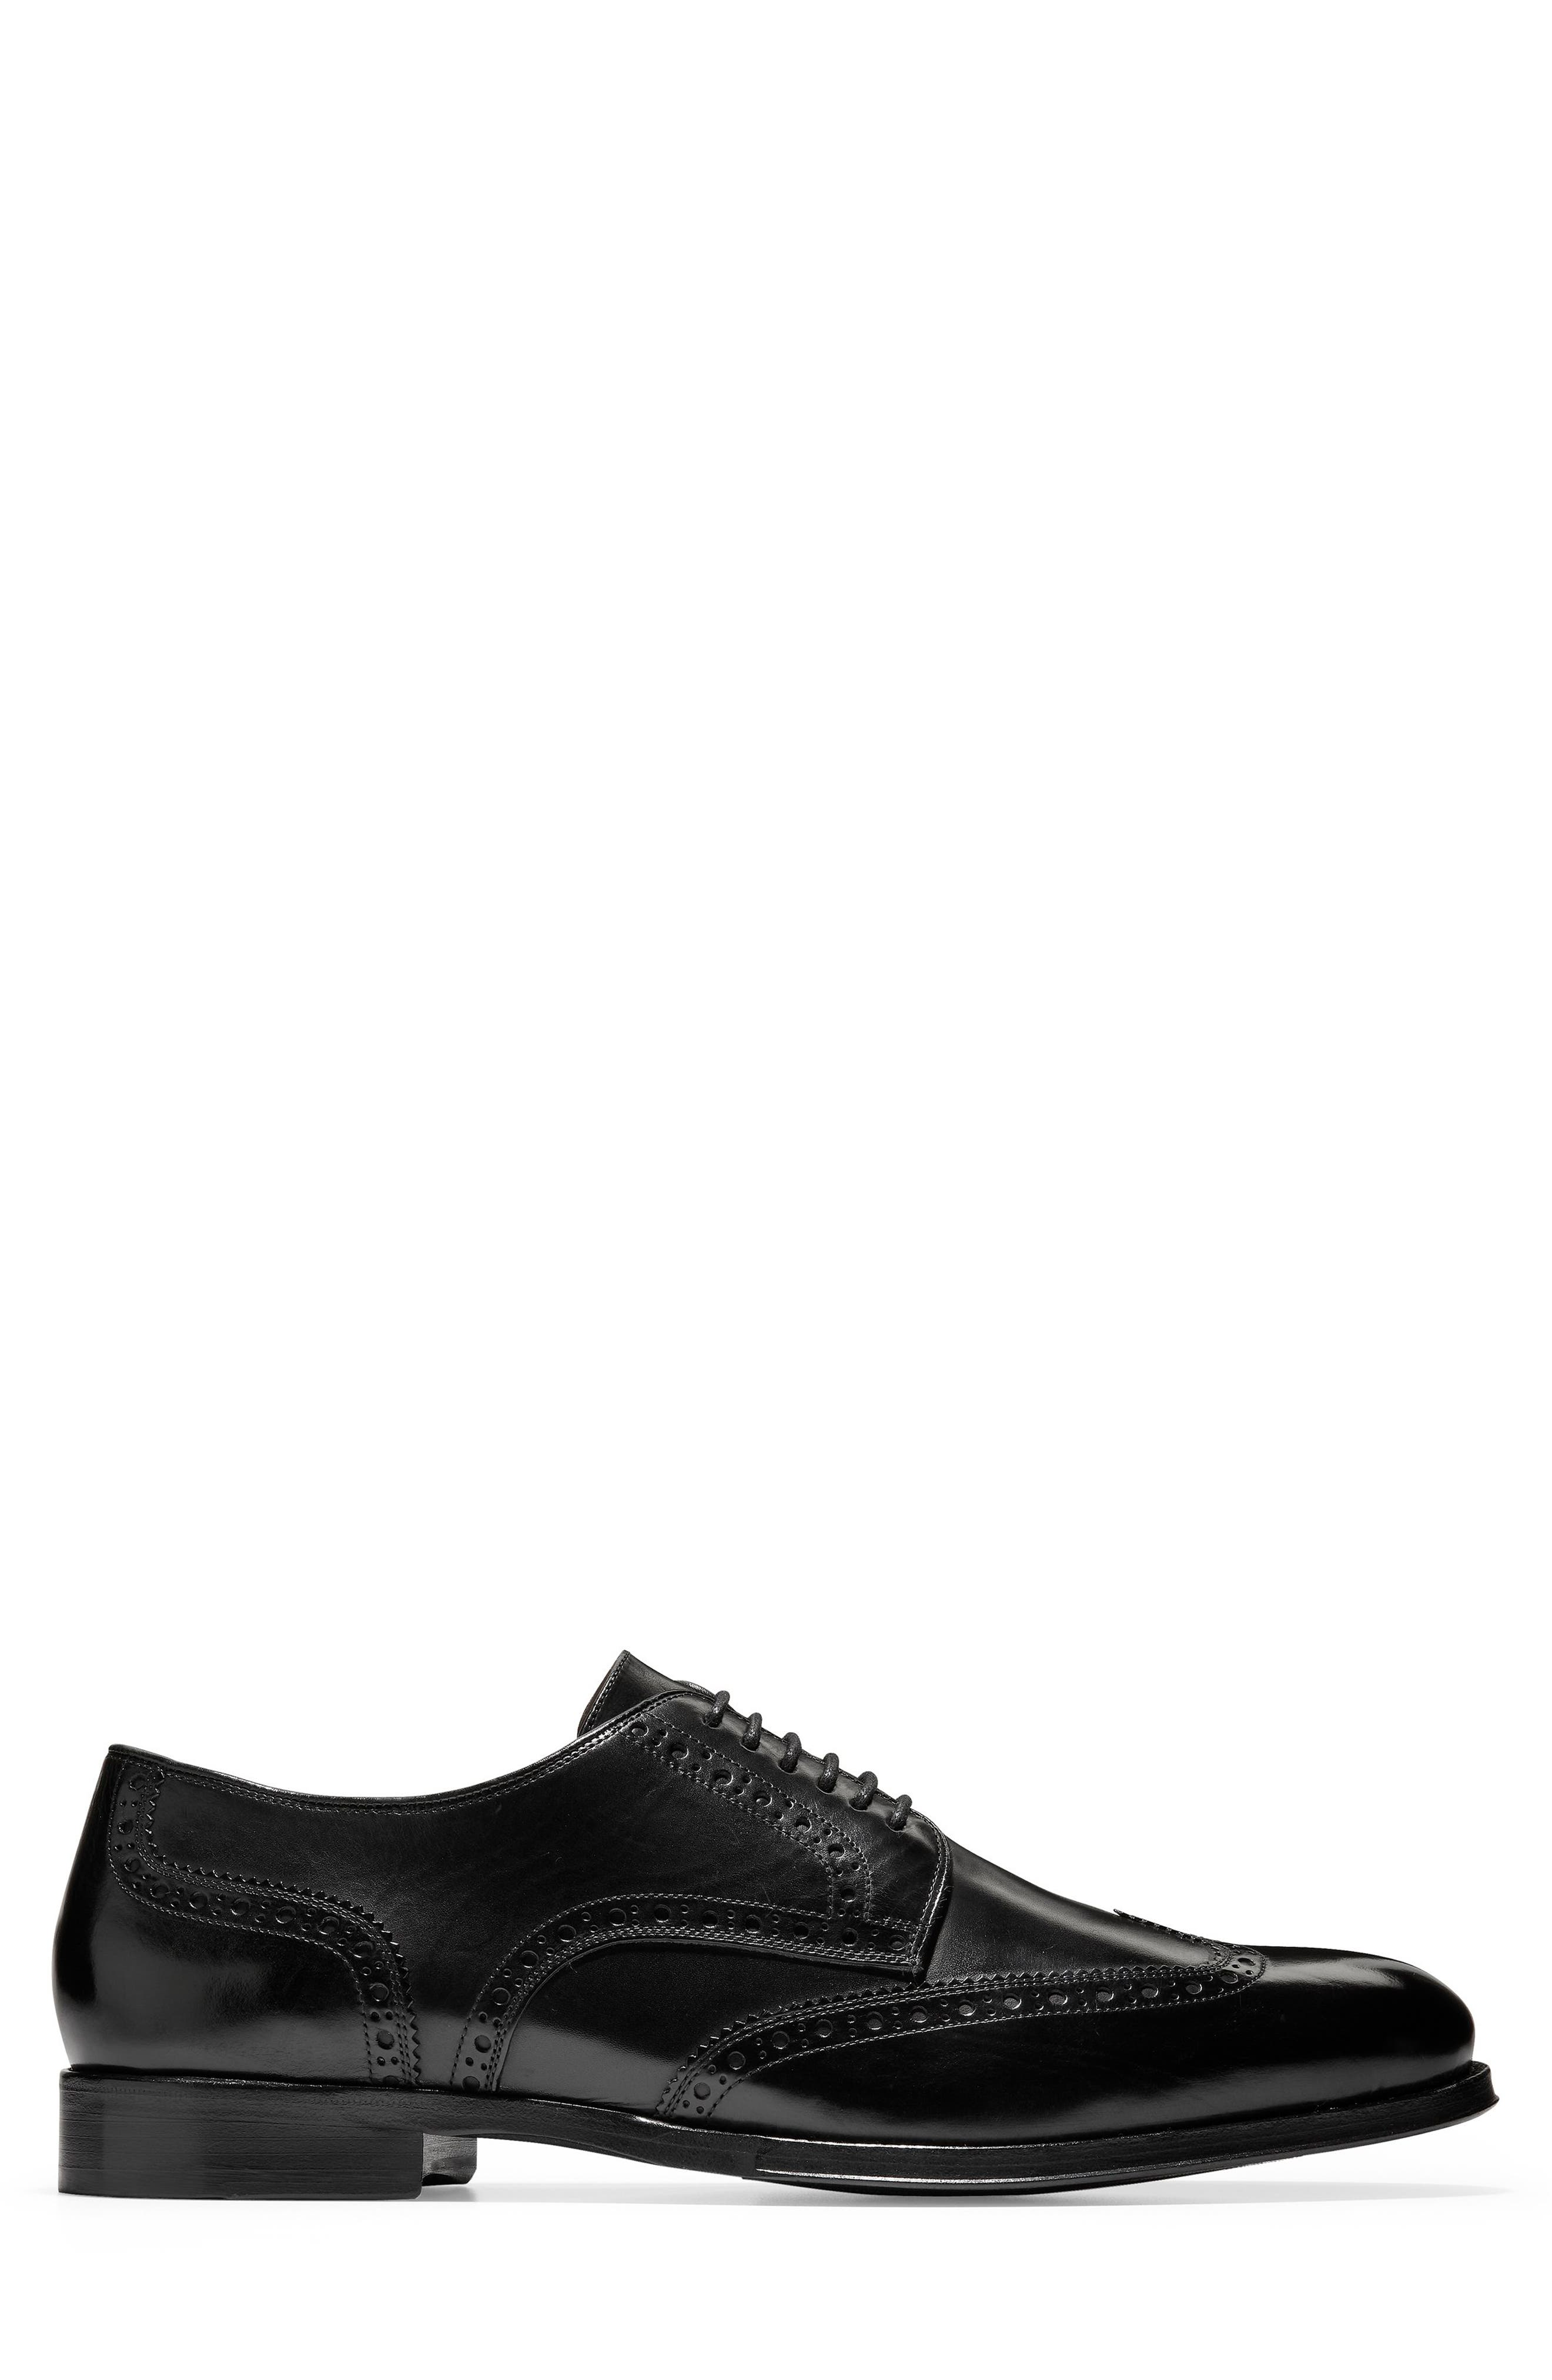 American Classics Grammercy Wingtip,                             Alternate thumbnail 3, color,                             BLACK LEATHER